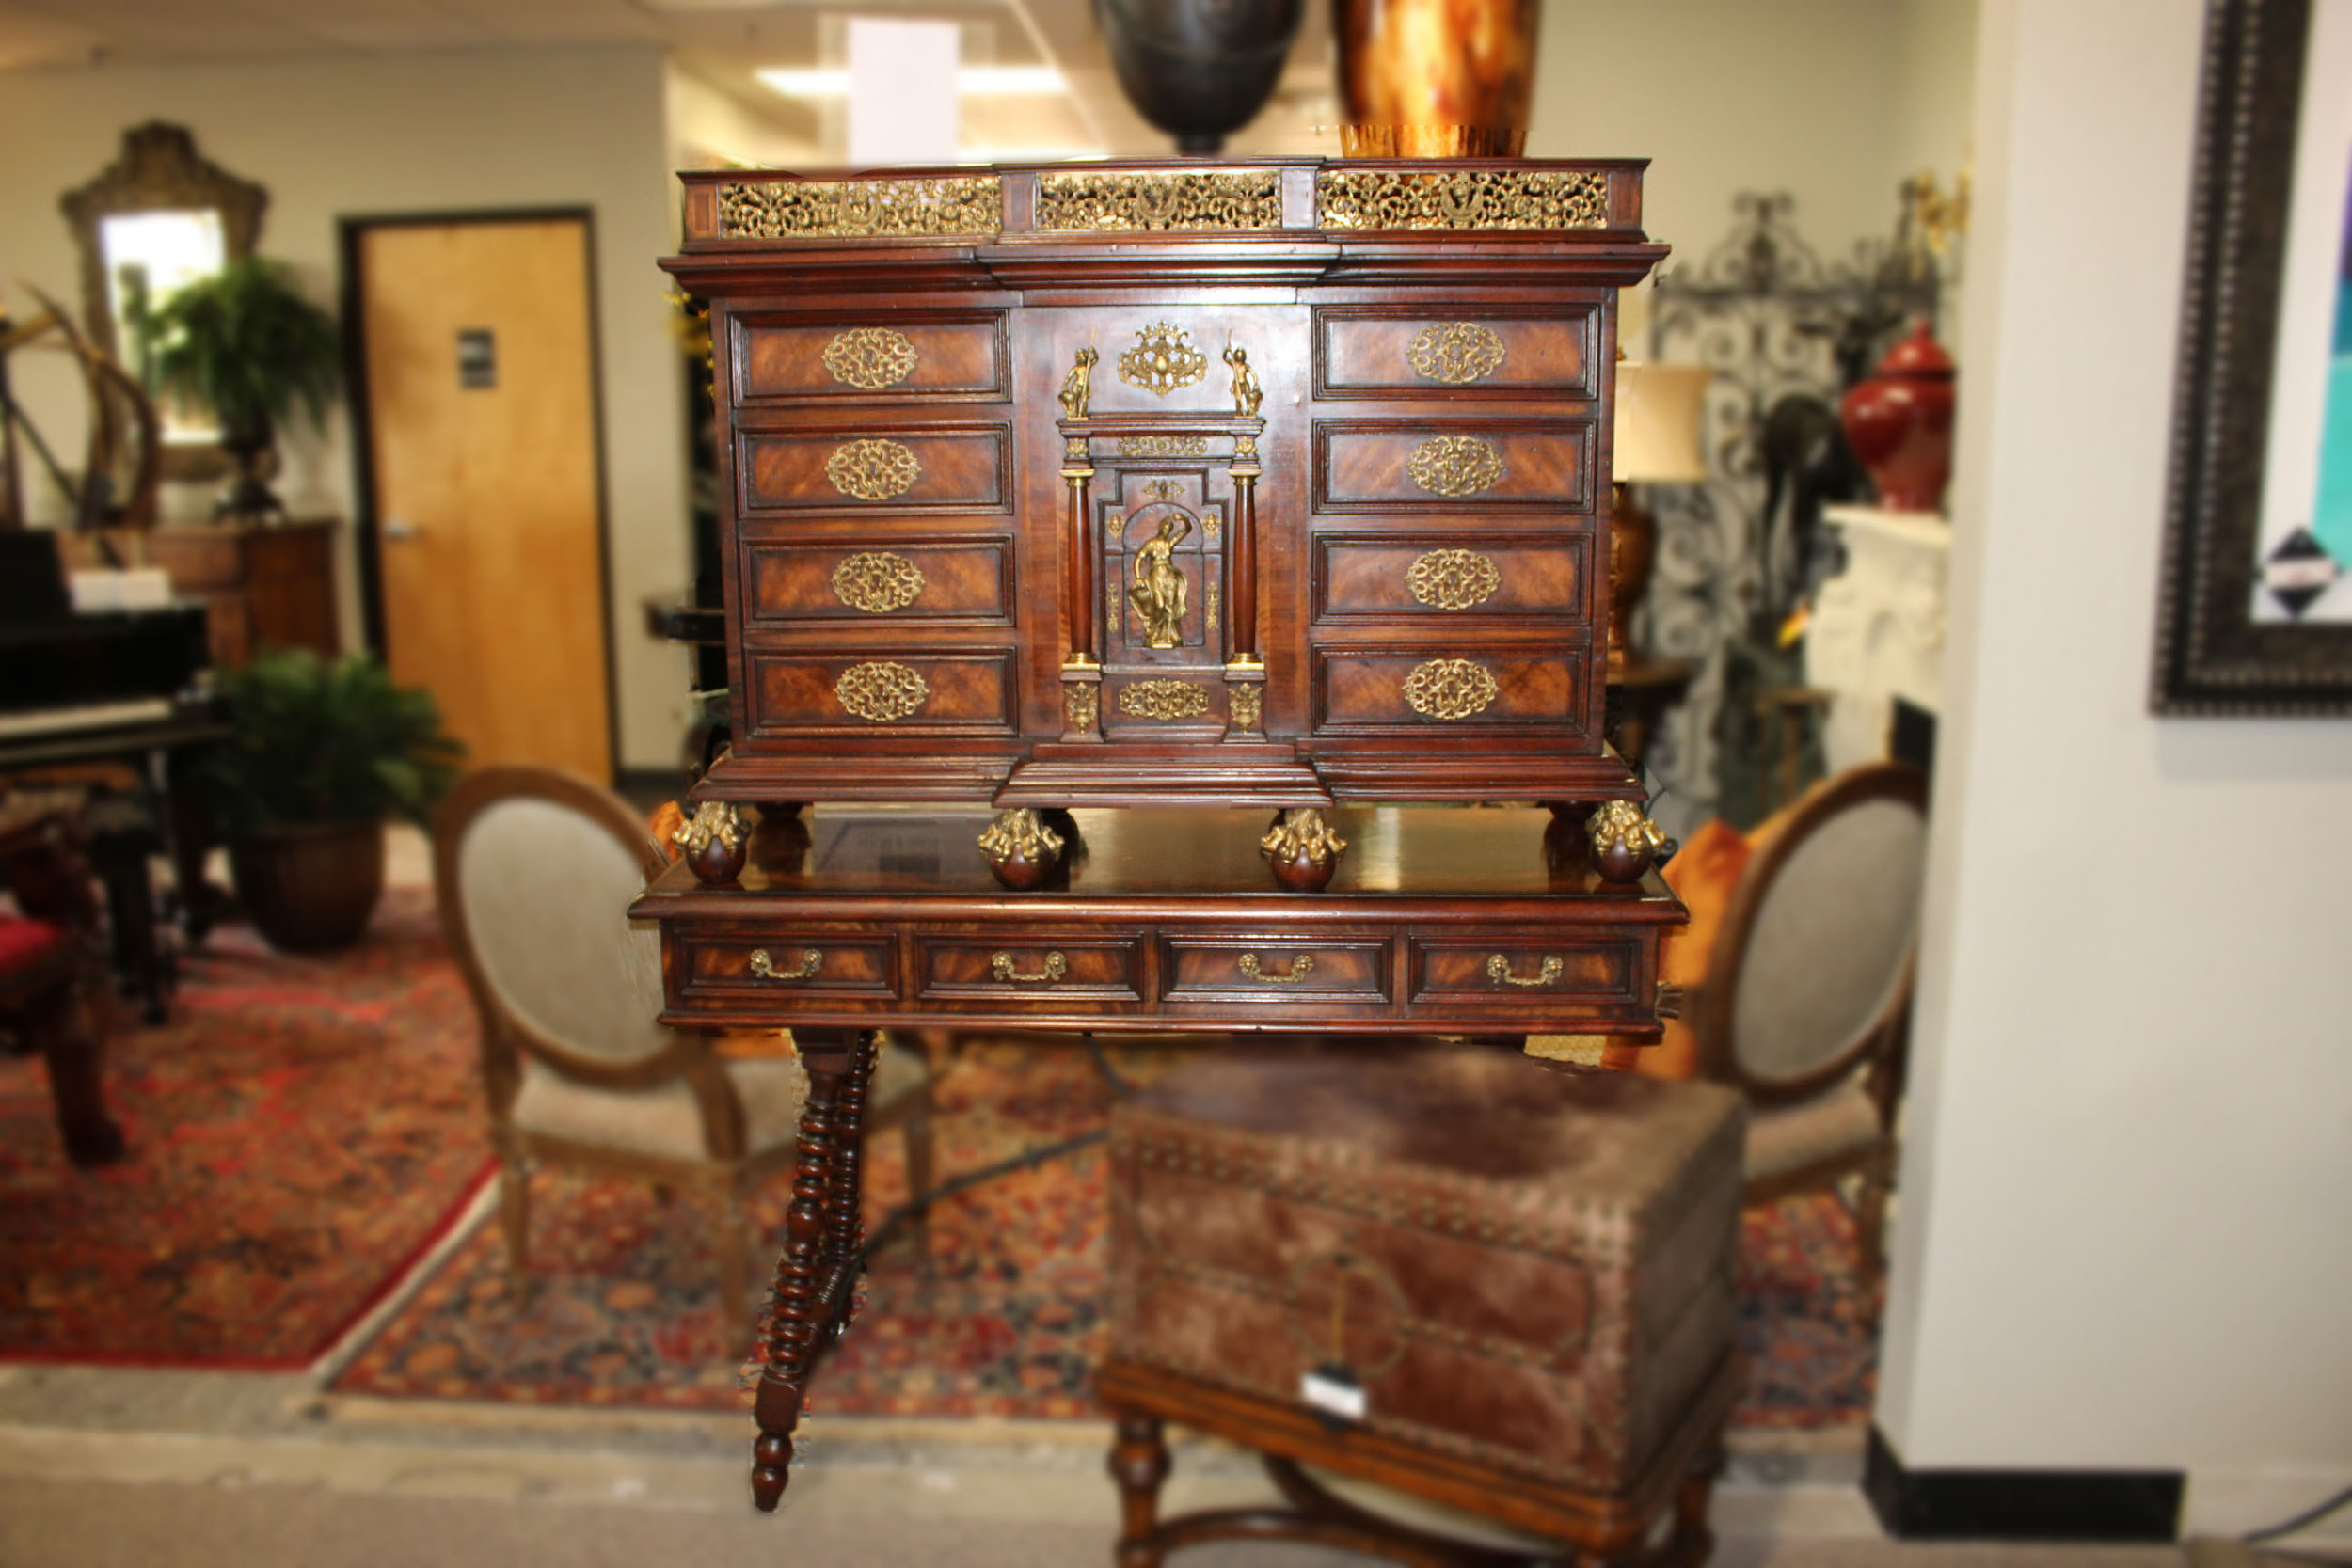 Theodore Alexander Renaissance Inspired Curiosity Cabinet on Stand from the Althorp Collection